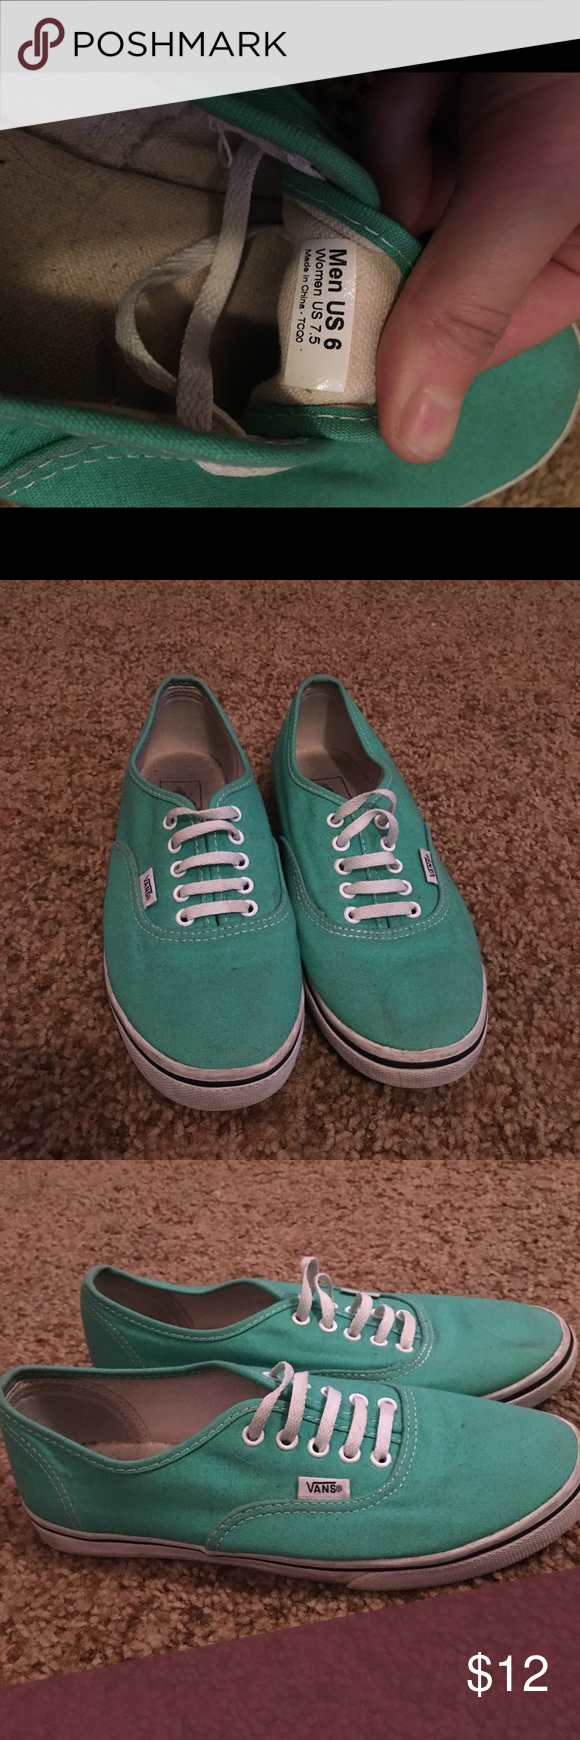 8be9ce1276 Mint Green Lo Vans women s size 7.5 worn a handful of times